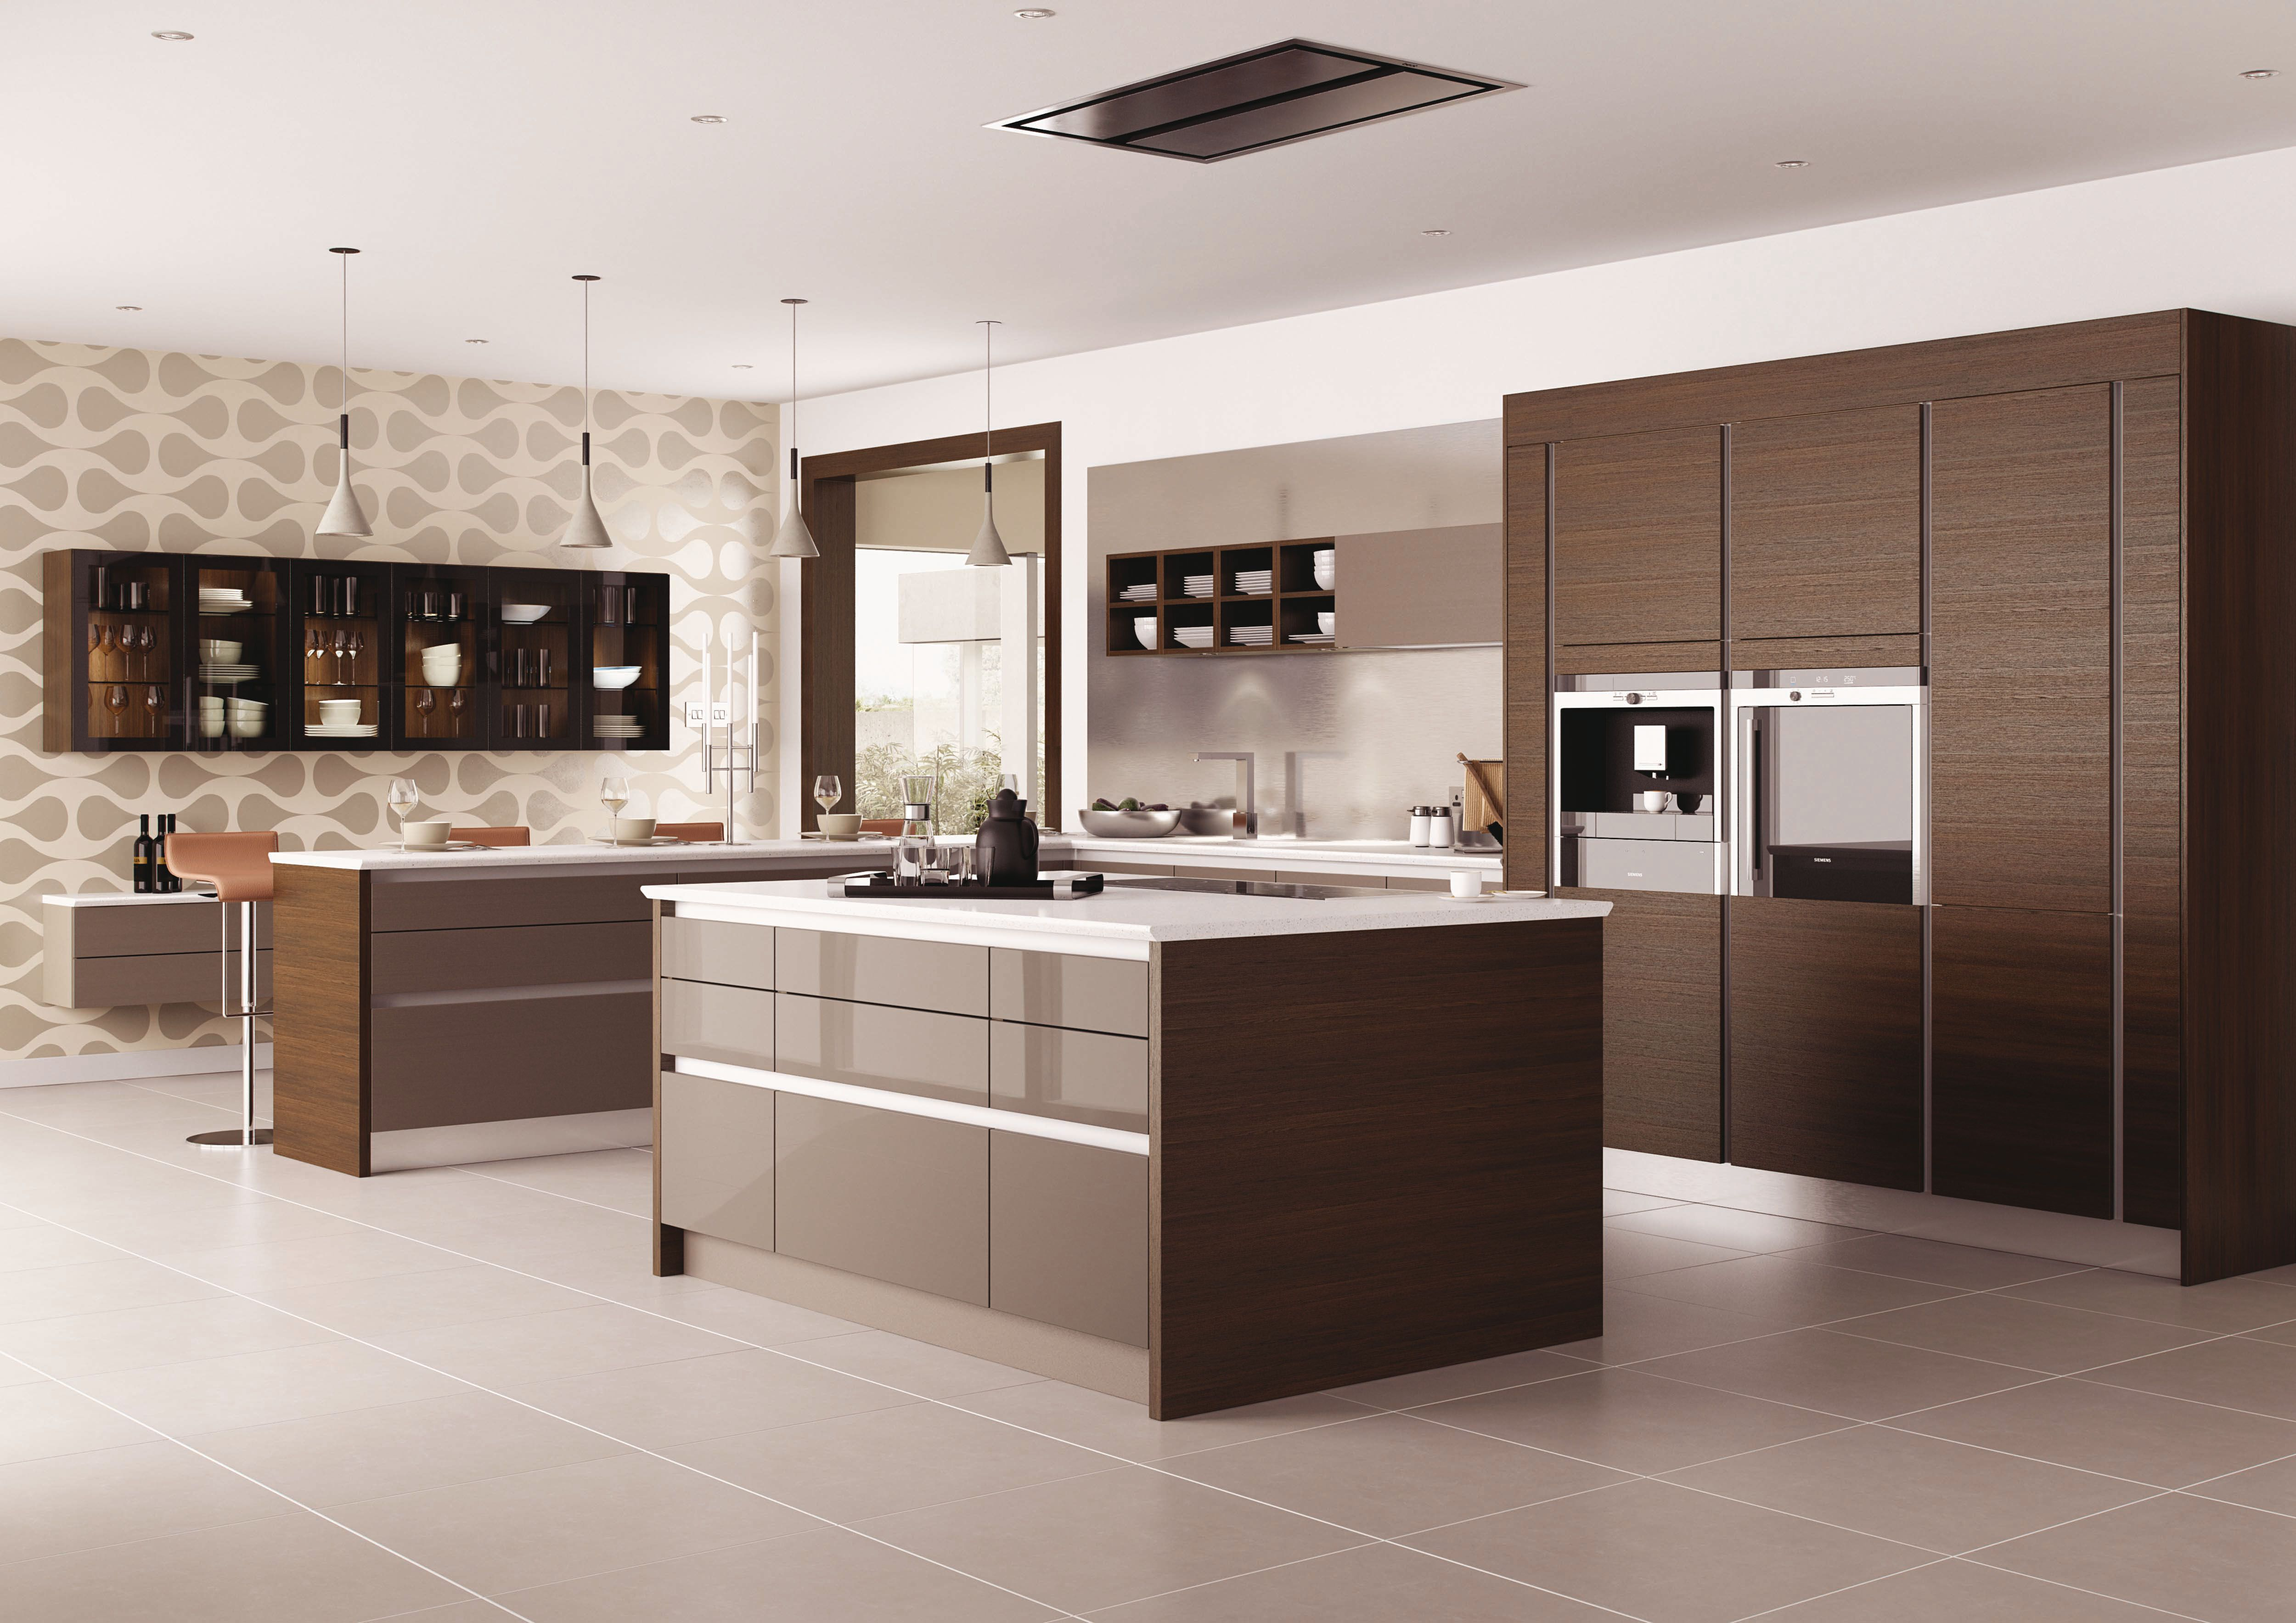 Mereway Kitchens Also Produce Handleless Kitchens In Many Styles And With  Great Design Flexibility. For The Most Modern And Sleek Look Available This  Is The ...